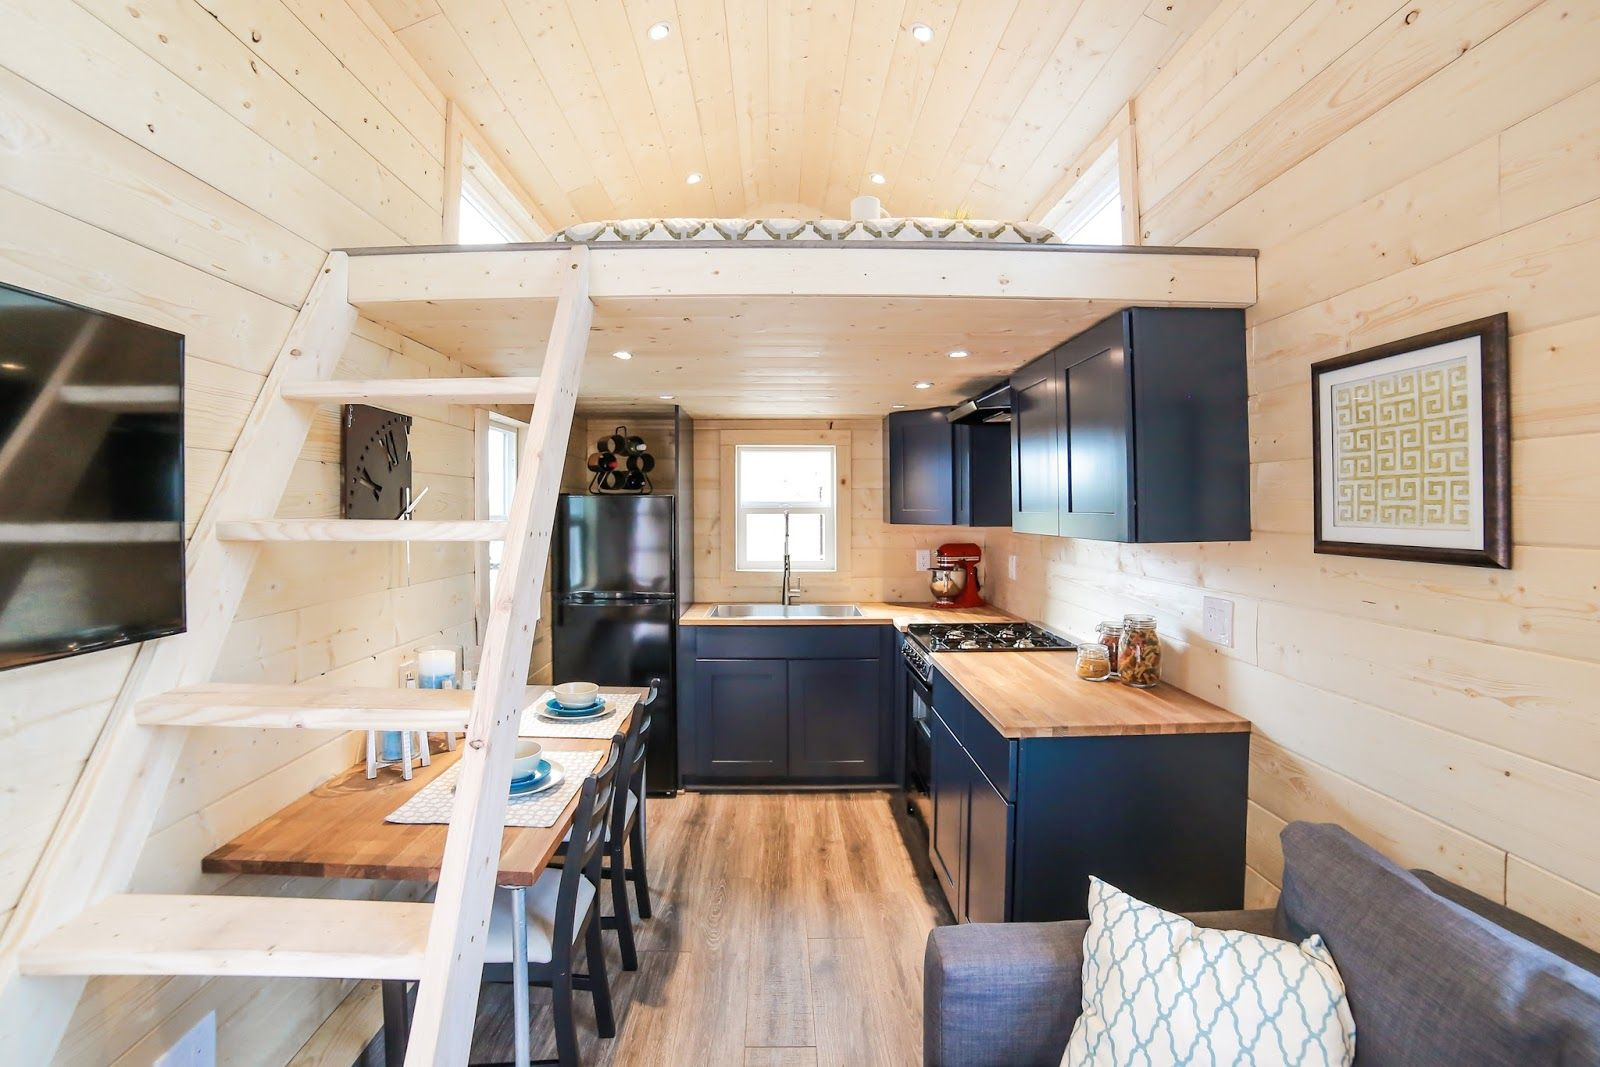 Mansion tiny house by Unchartered Tiny Homes | prius | Pinterest ...